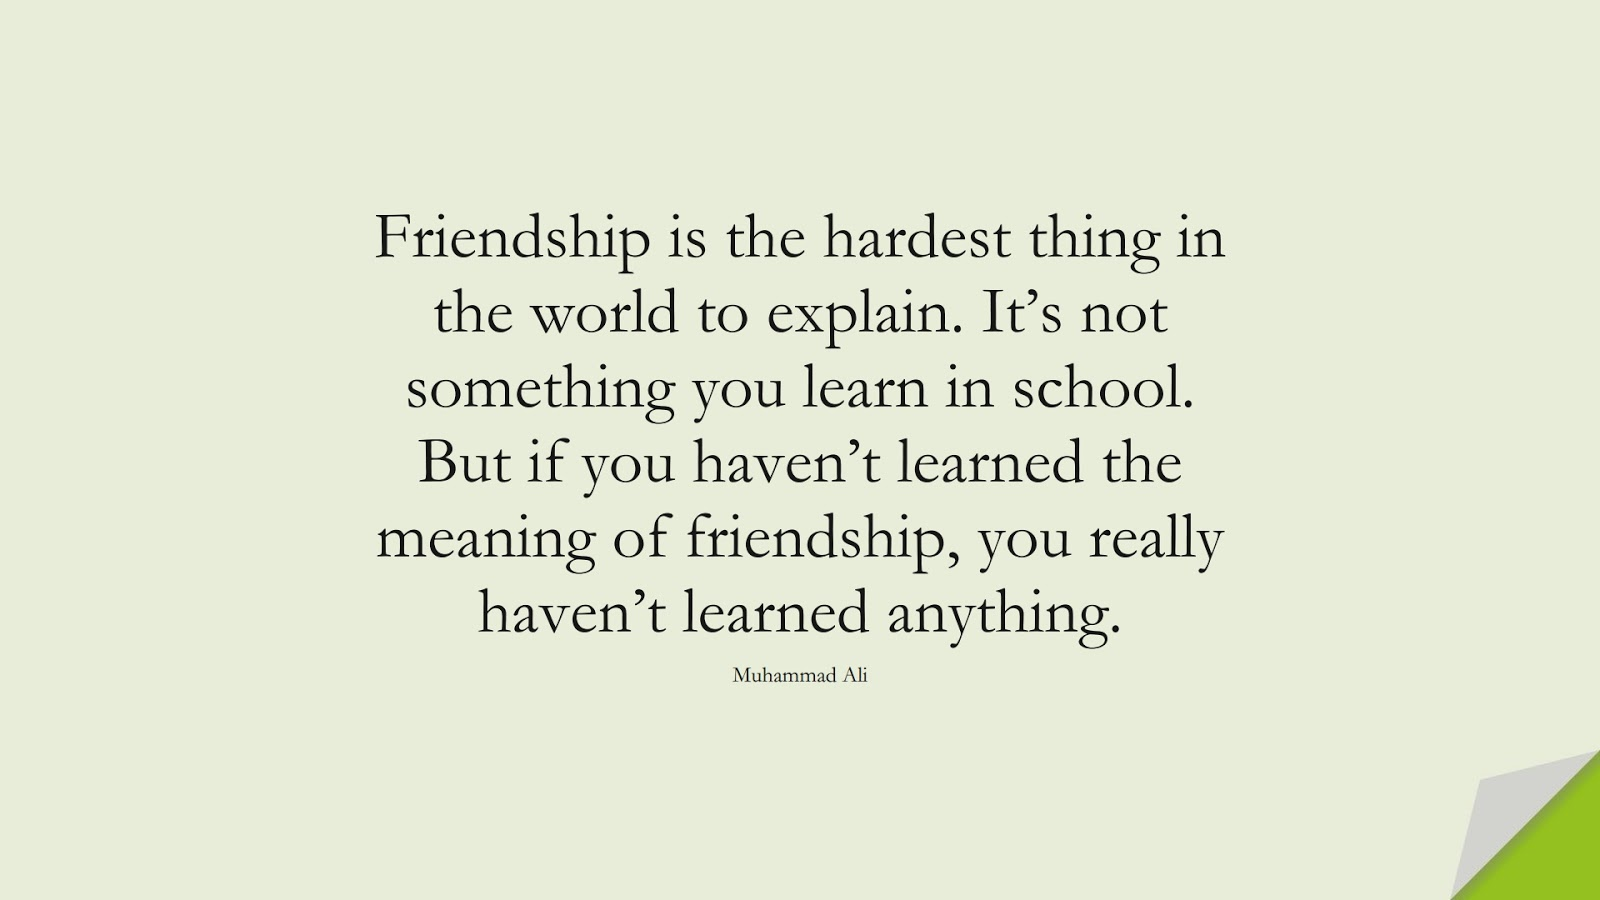 Friendship is the hardest thing in the world to explain. It's not something you learn in school. But if you haven't learned the meaning of friendship, you really haven't learned anything. (Muhammad Ali);  #FriendshipQuotes